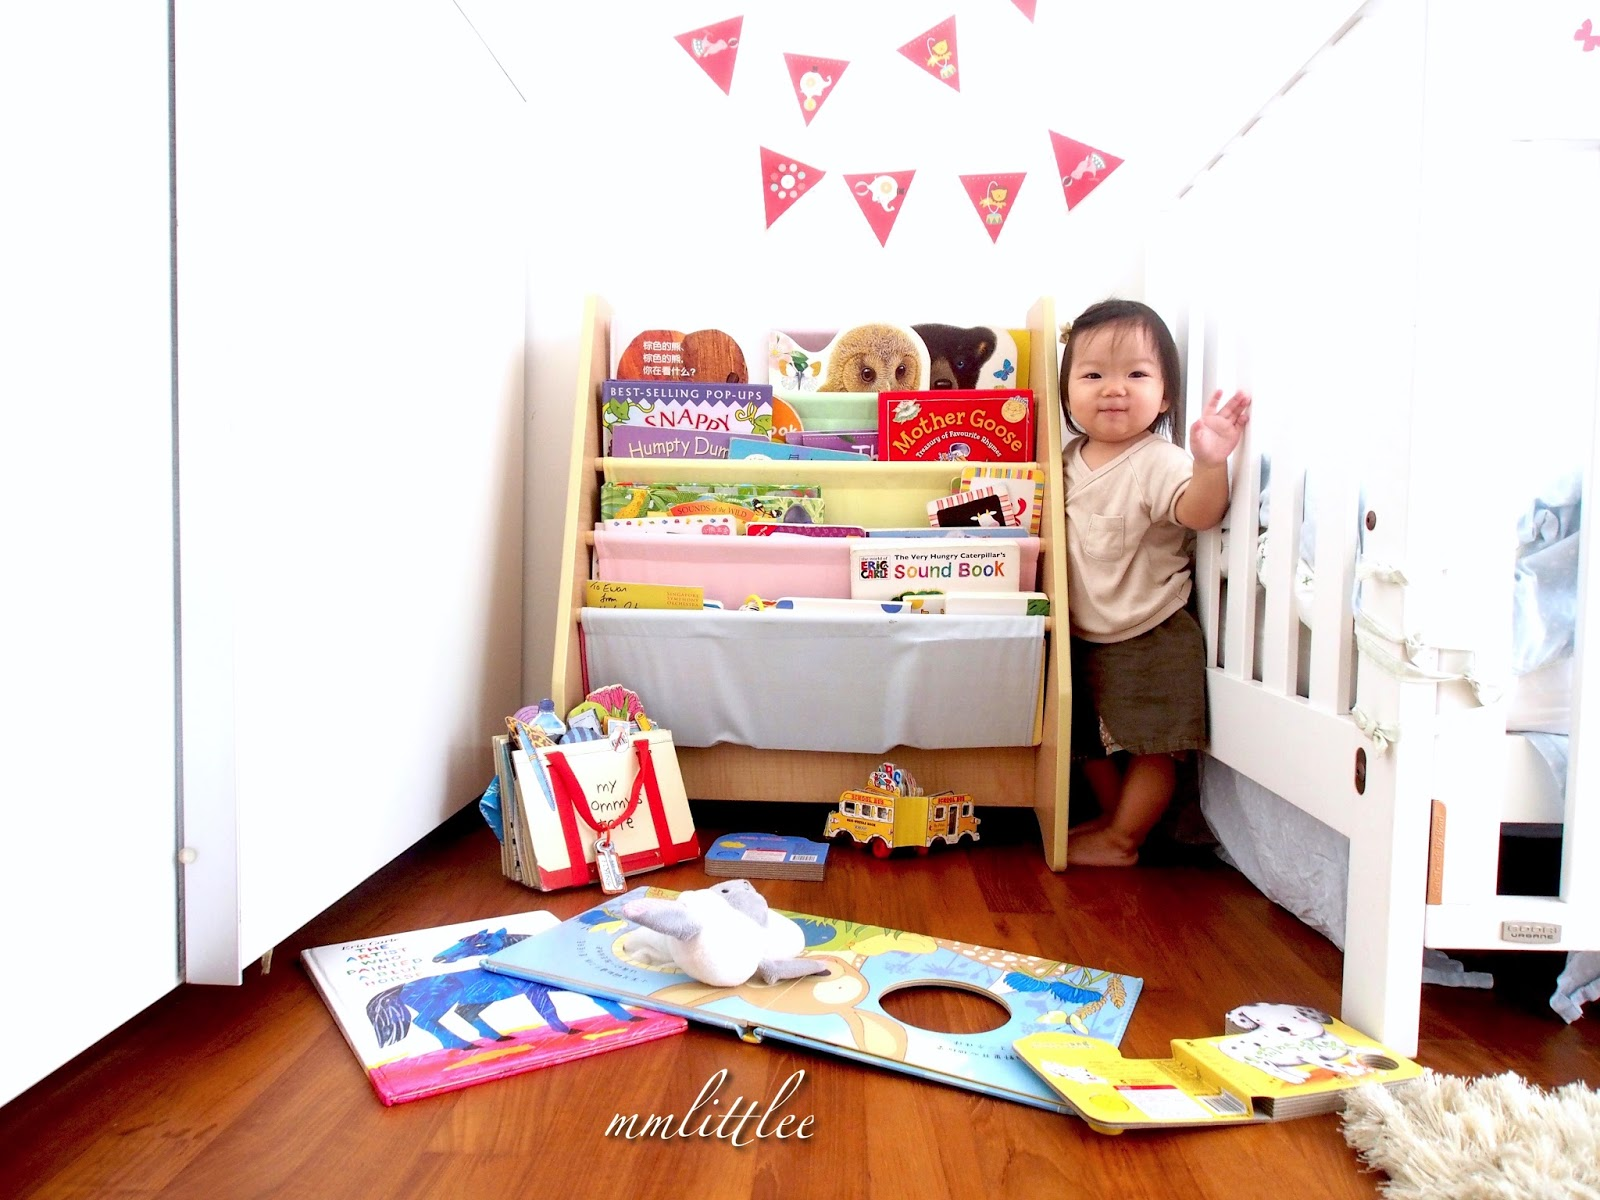 Small Es Our Children Invaded The House A Million Little Echoes Image Of Personalized Kidkraft Sling Bookshelf